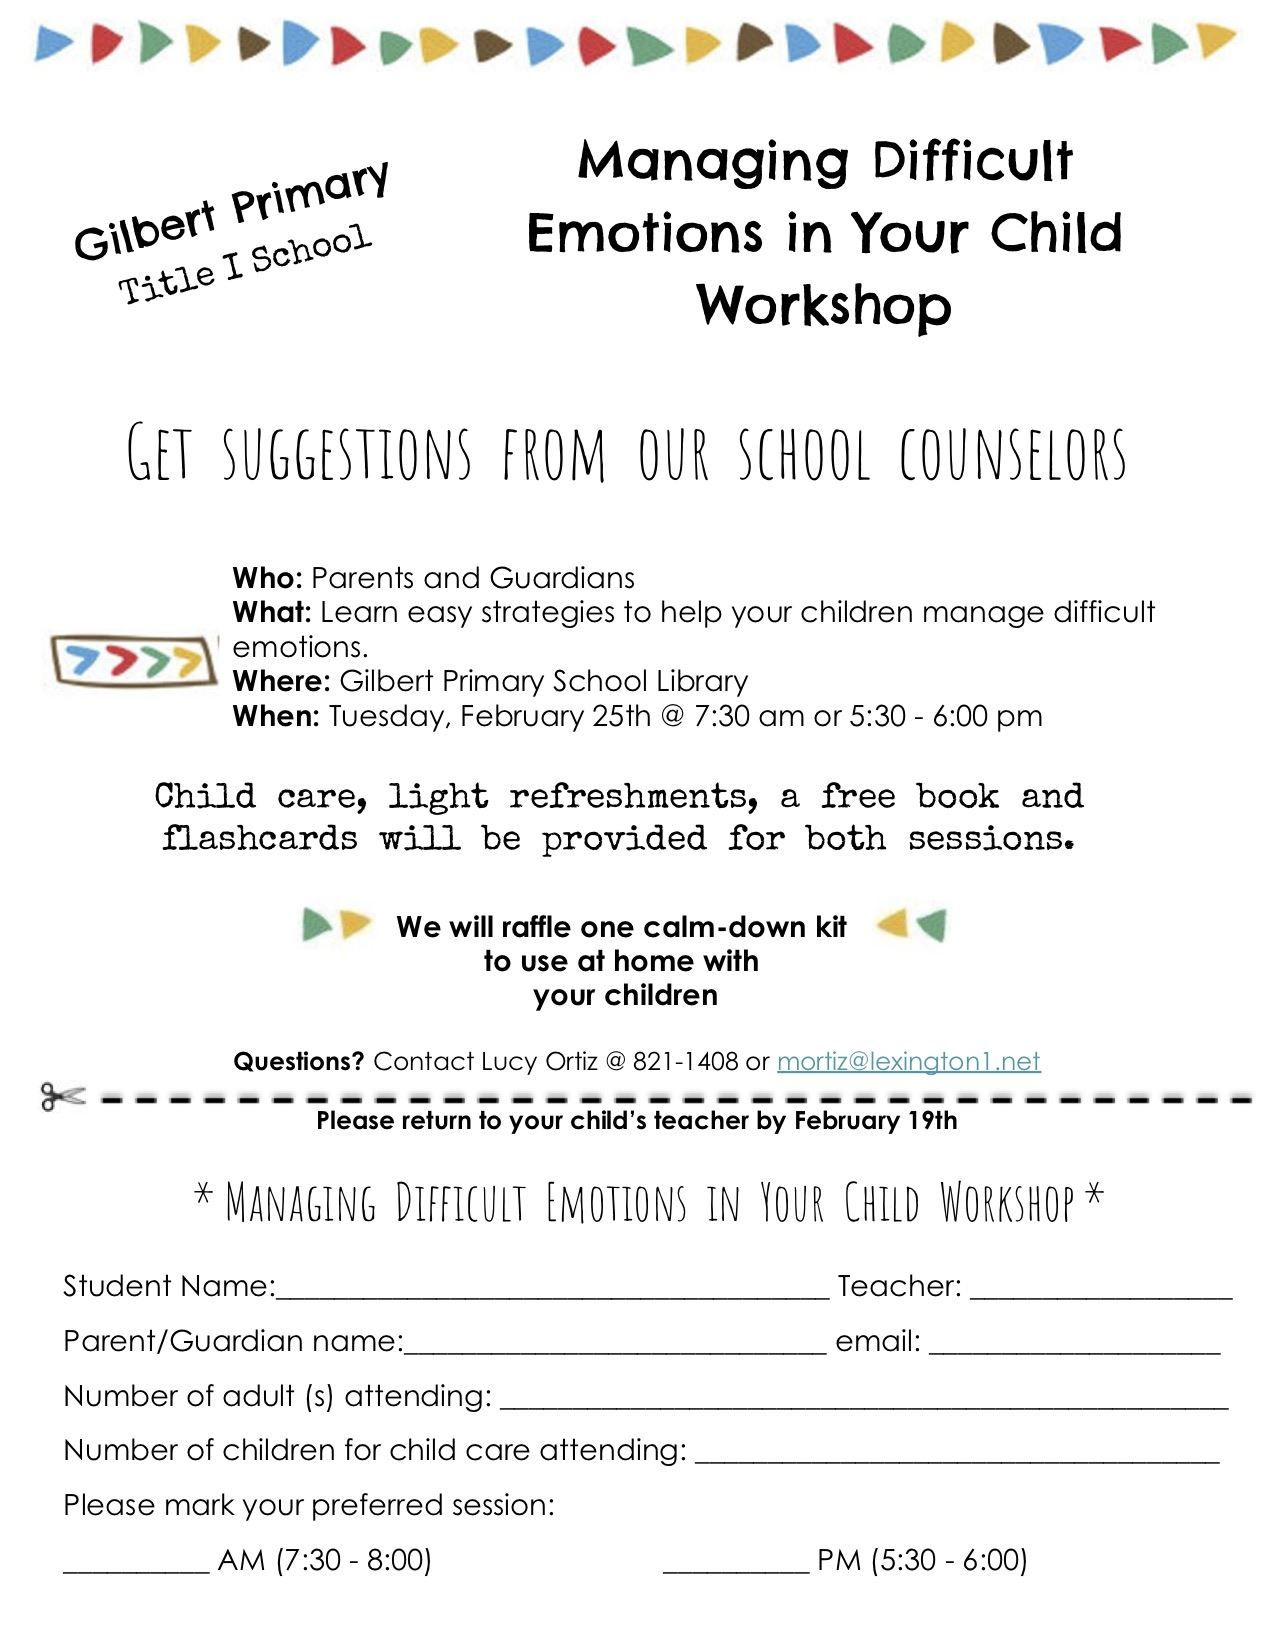 Managing Difficult Emotions in Your Child Workshop